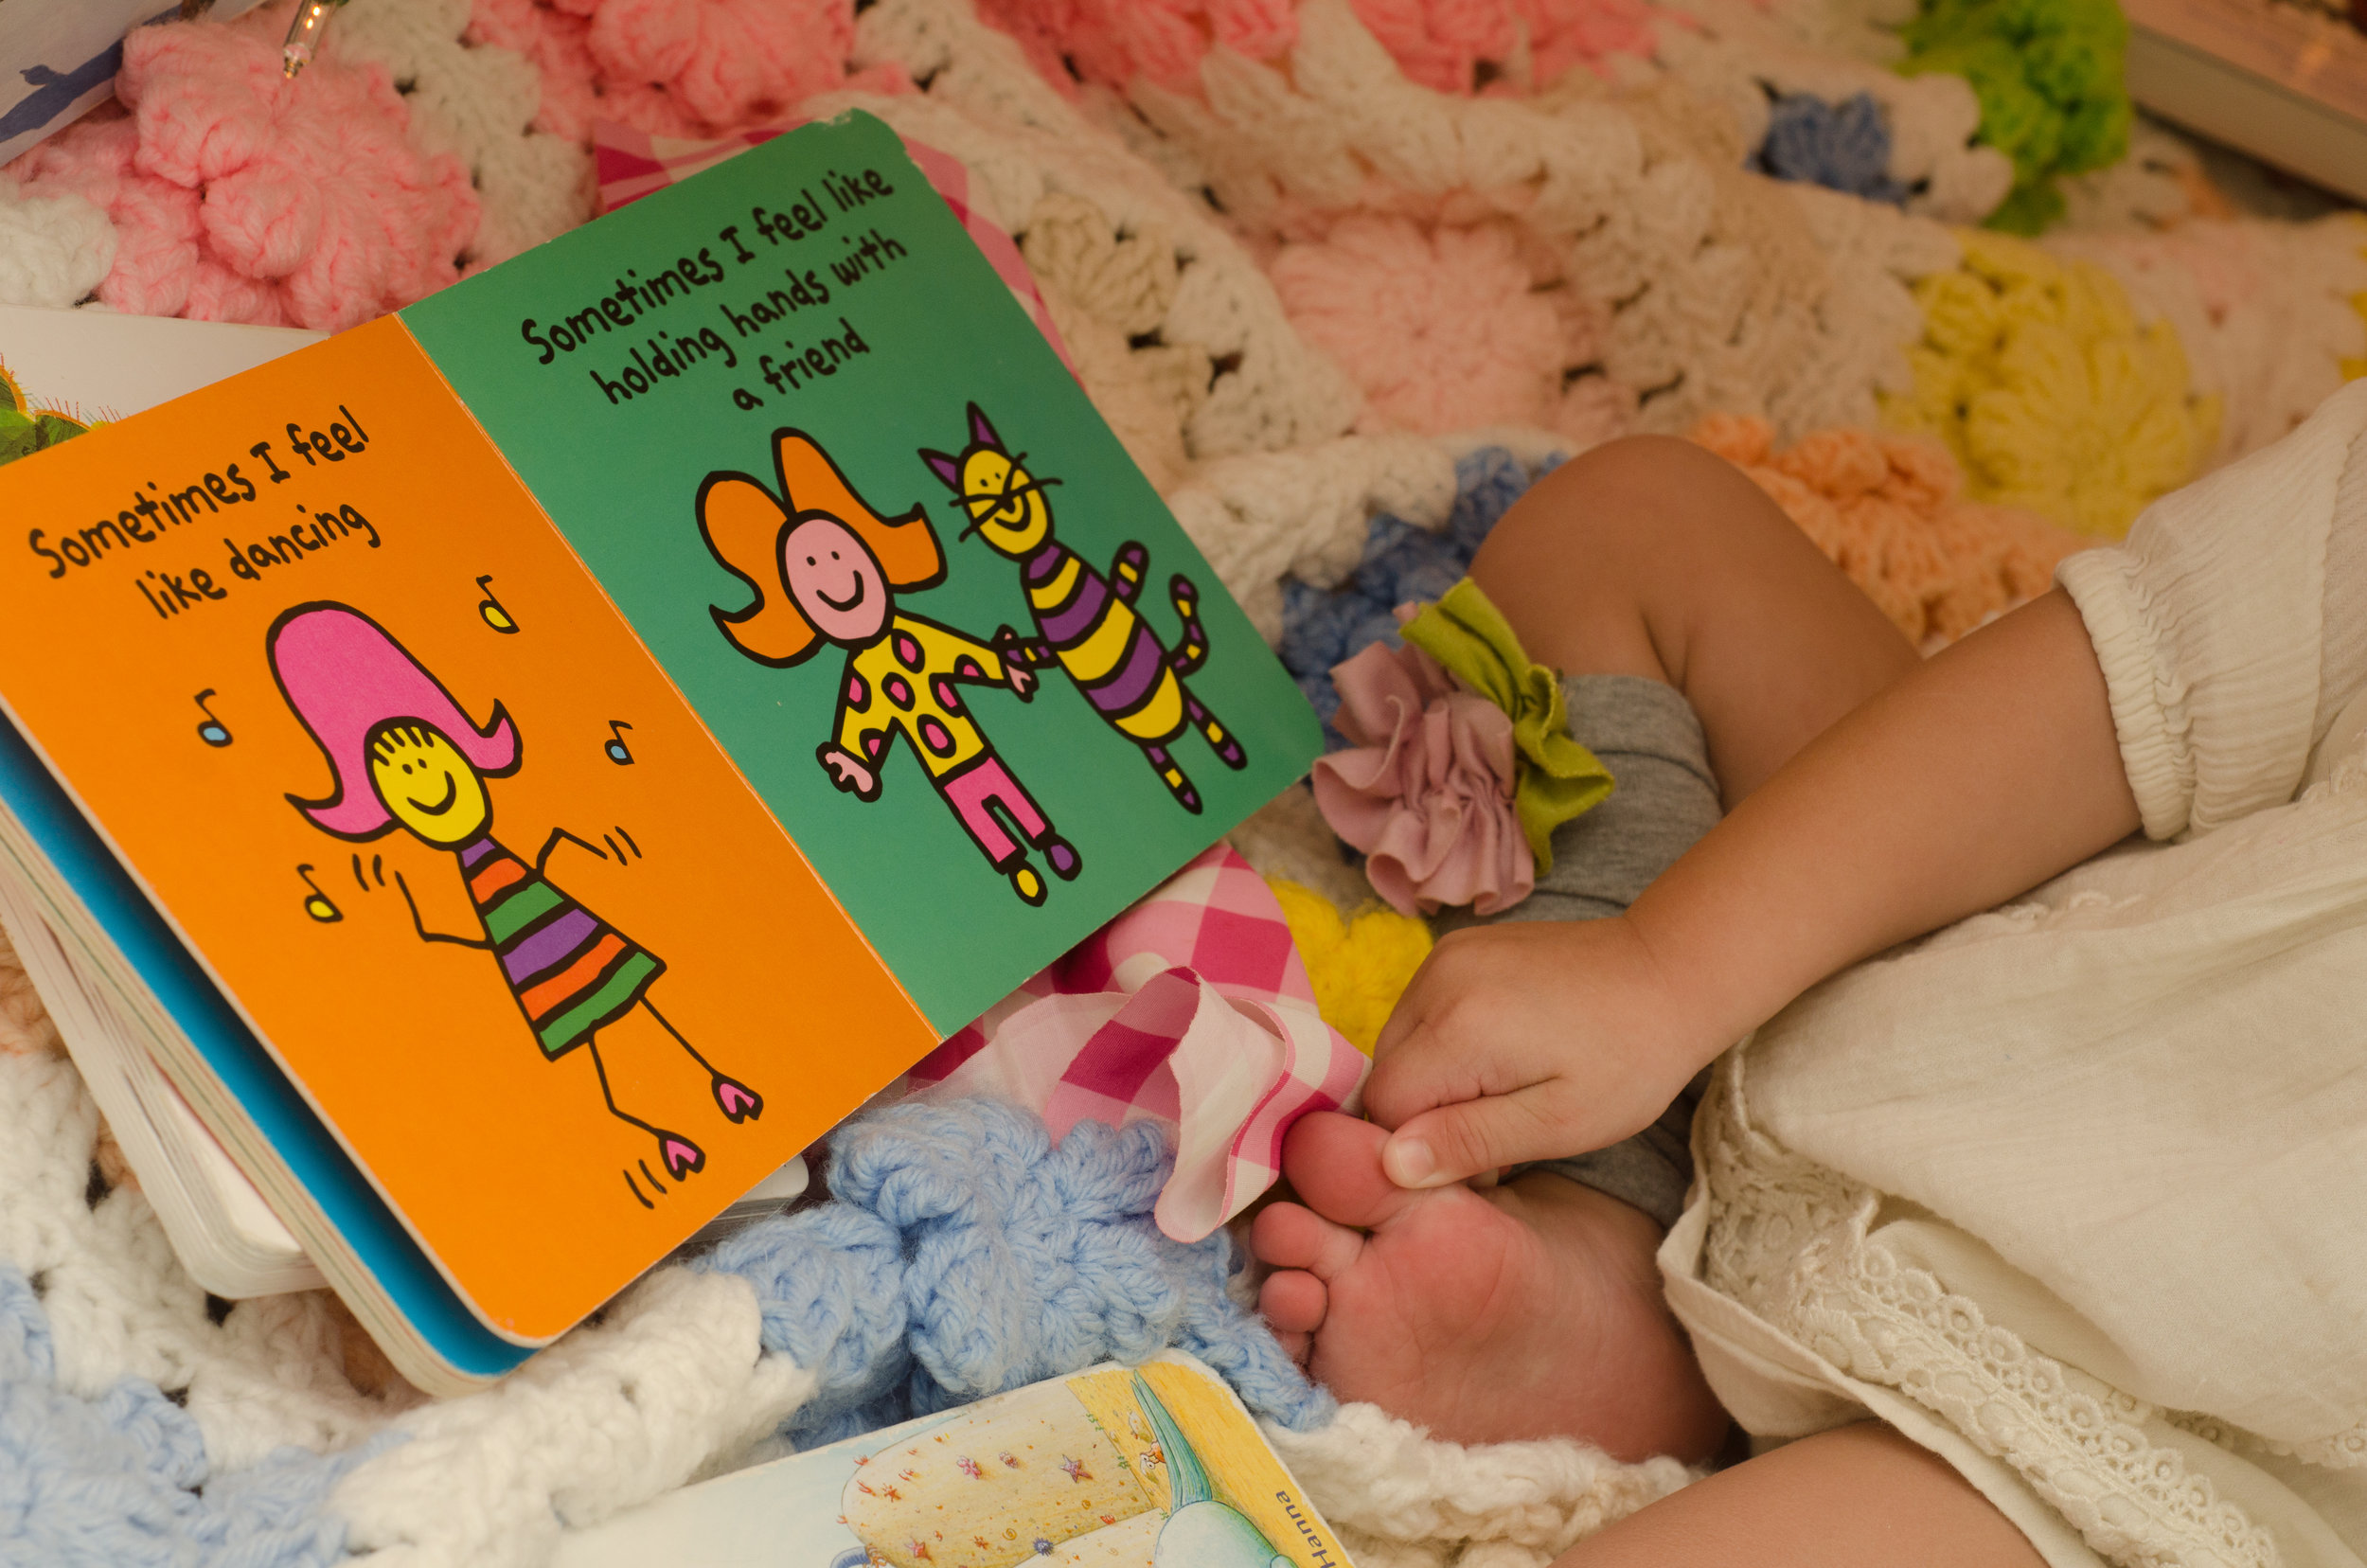 best board books for babies - shegotguts.com